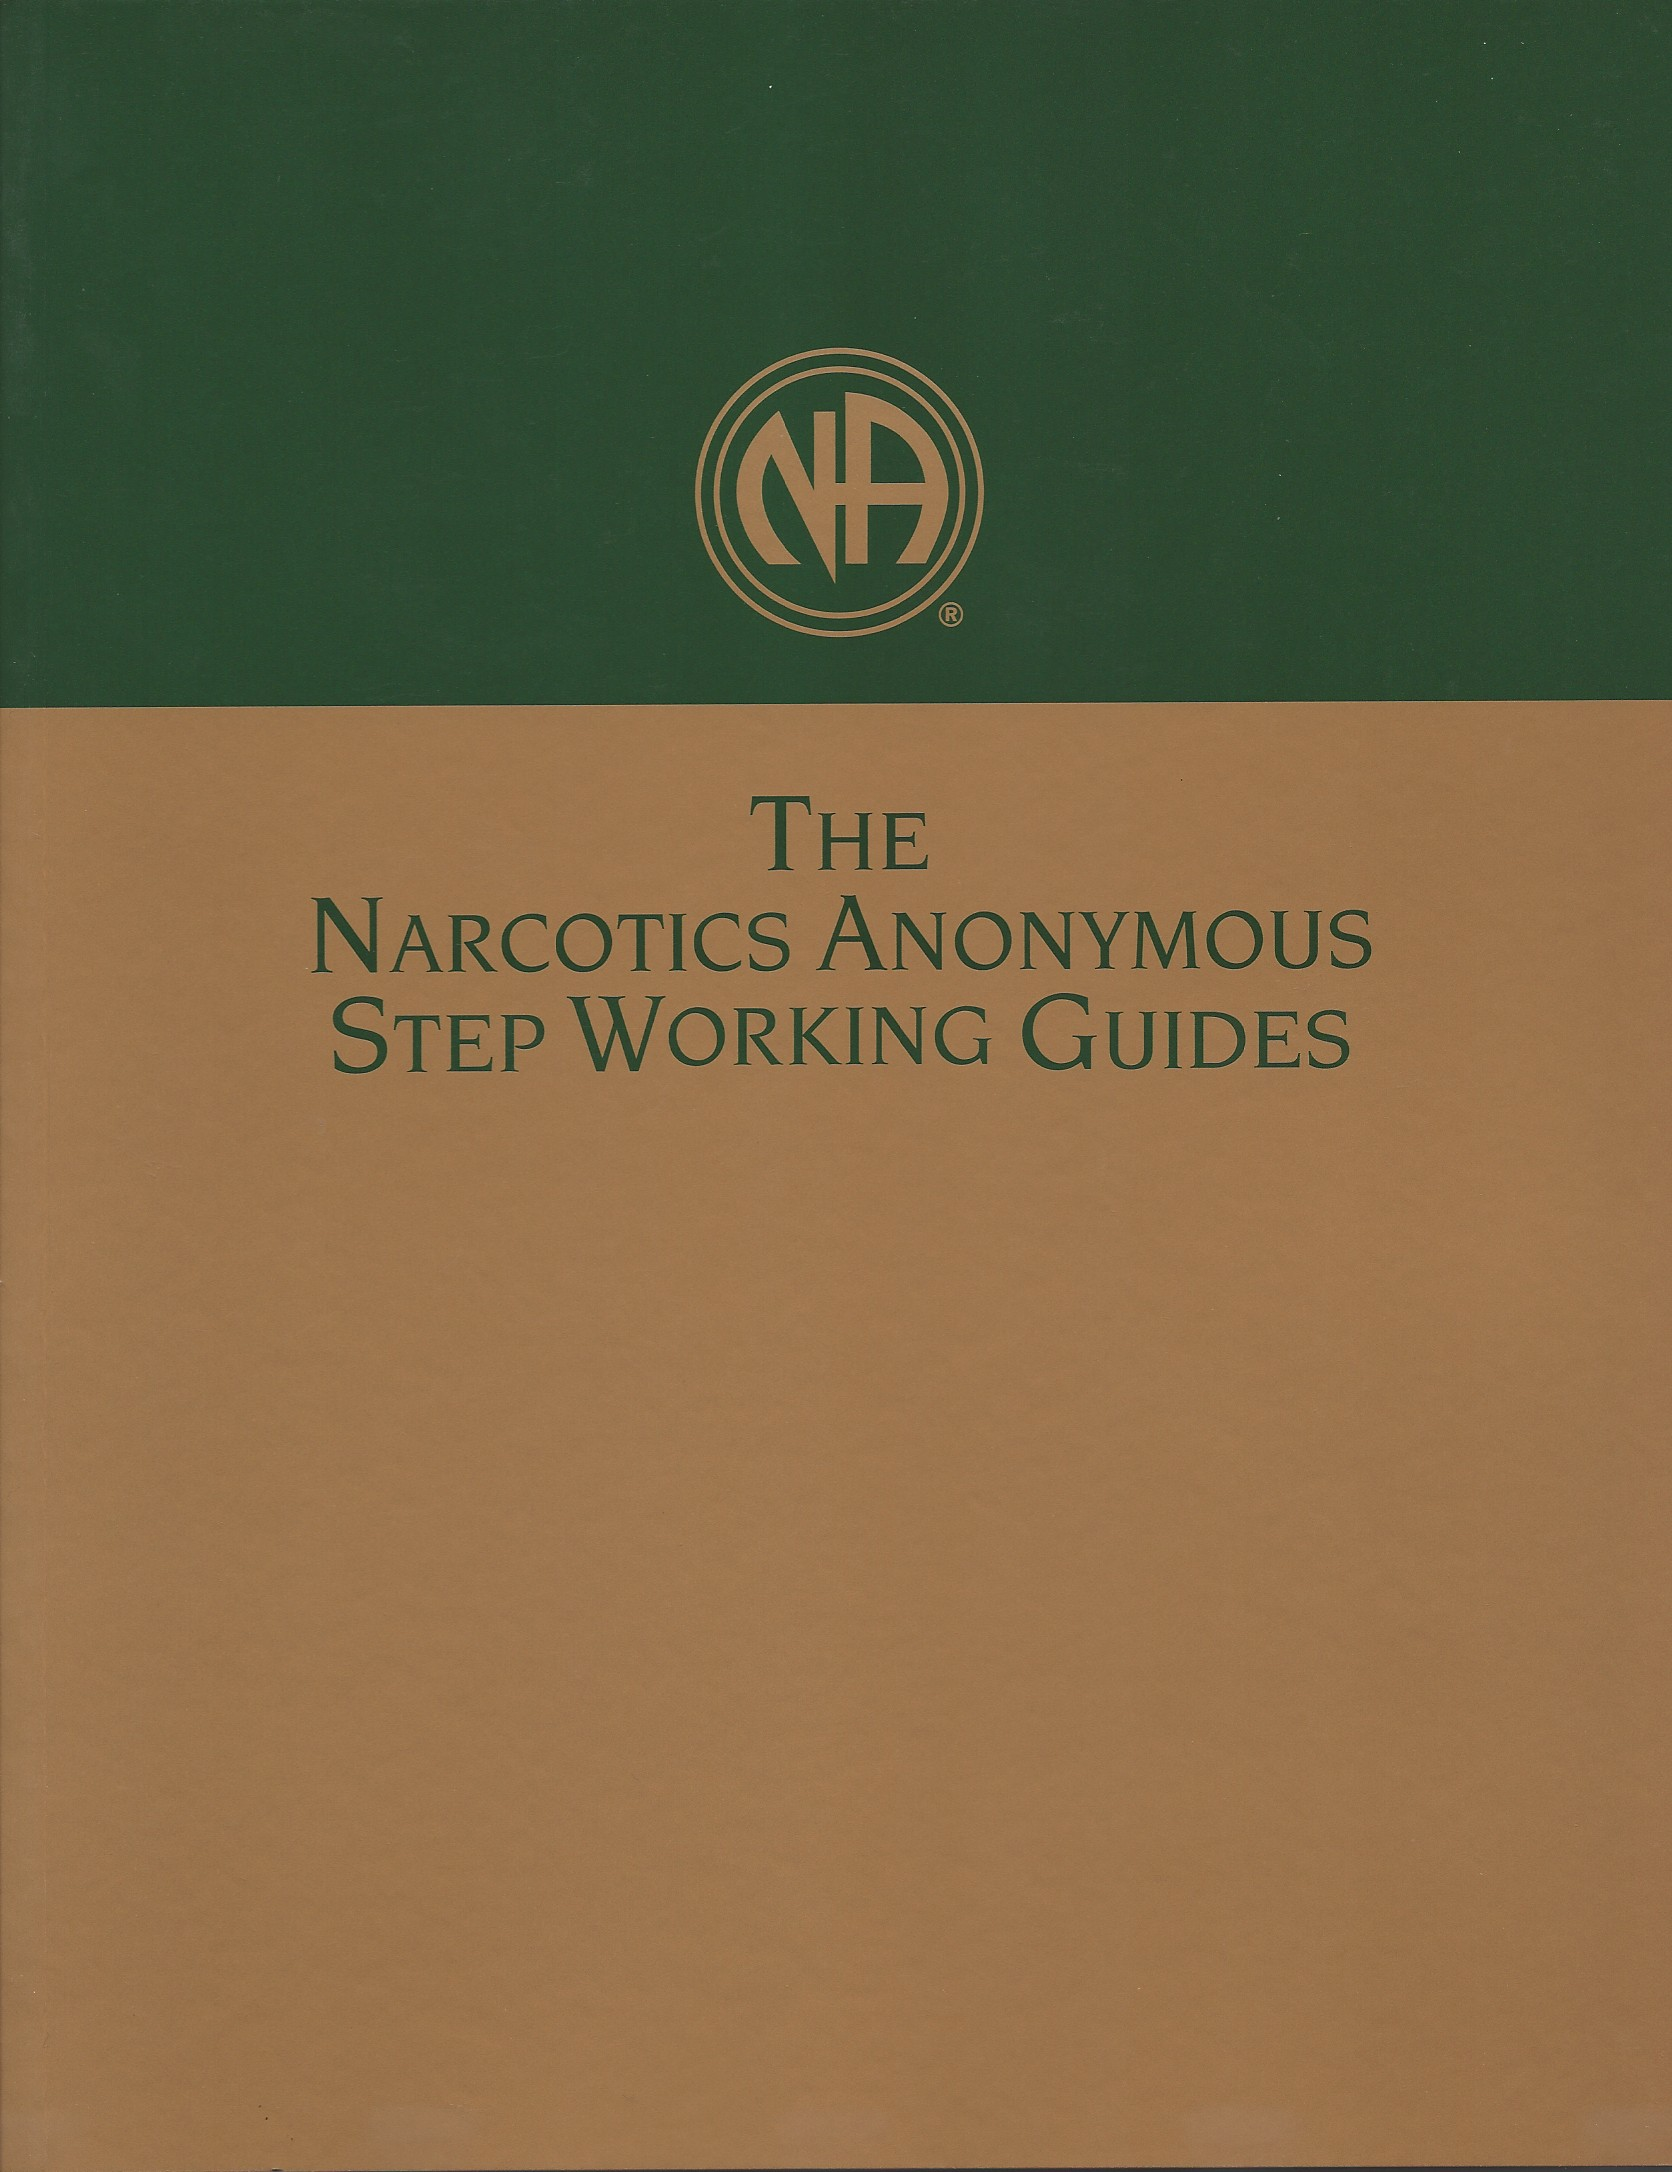 Na Step Working Guide